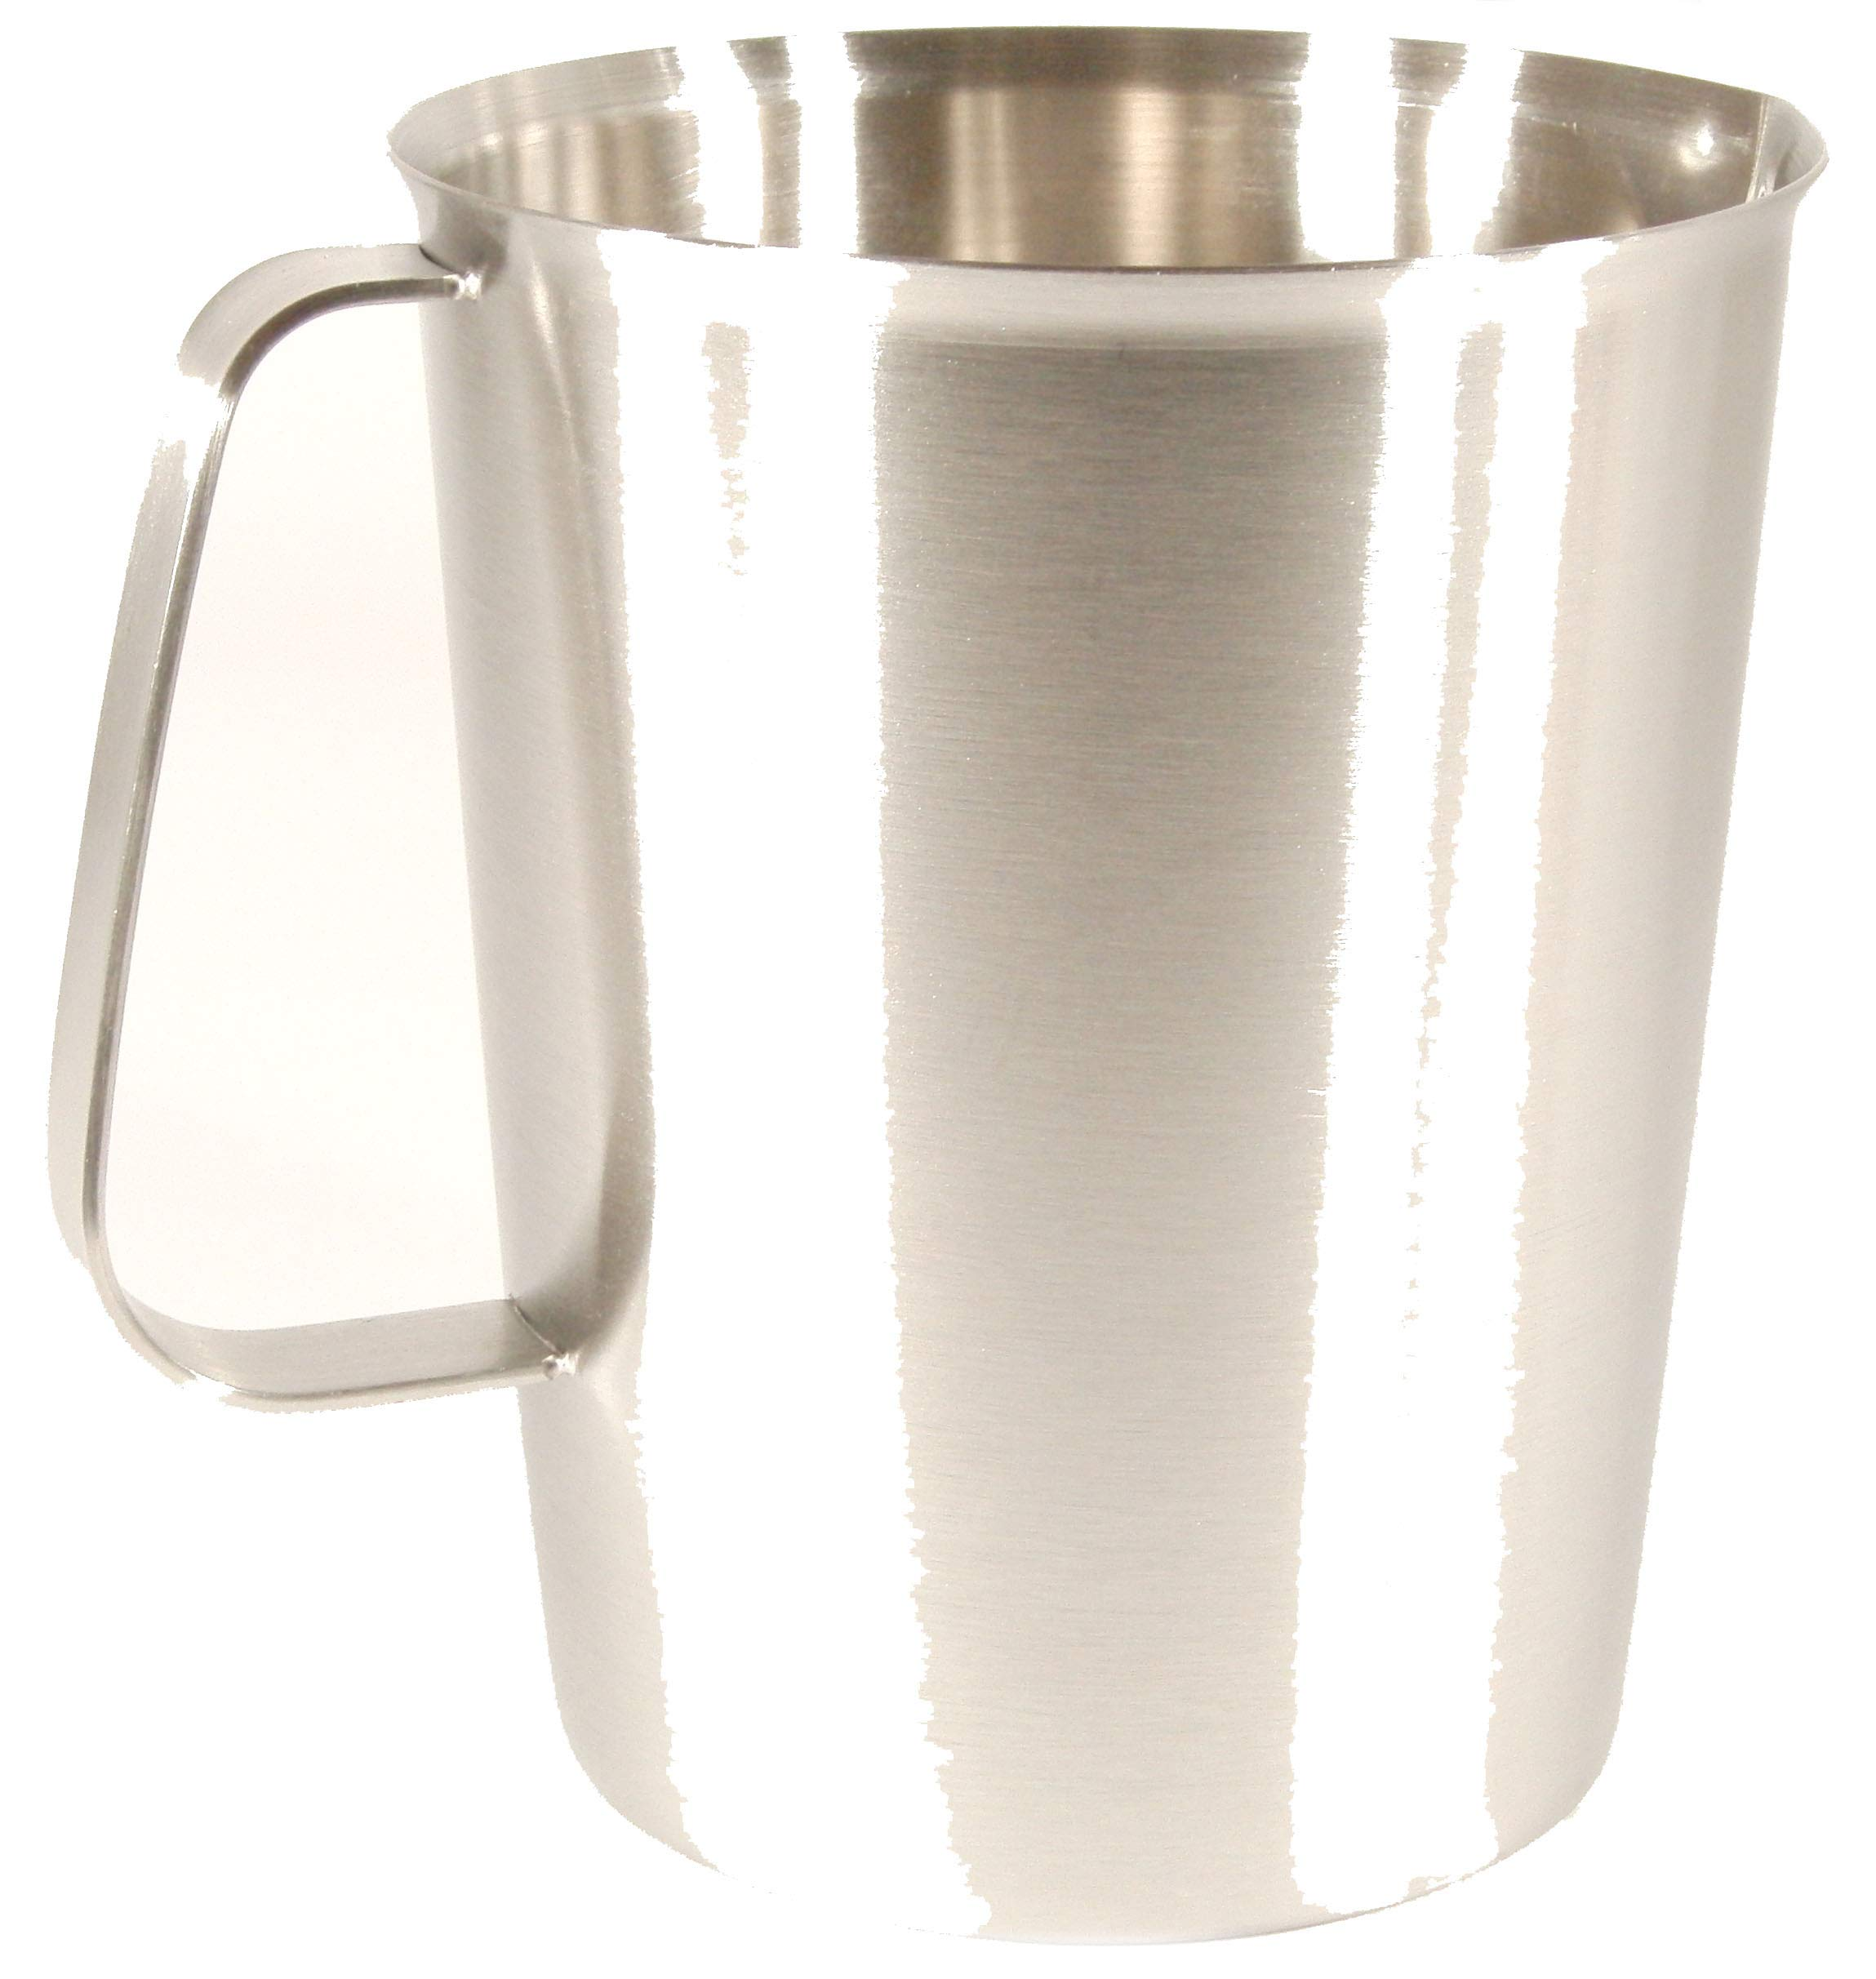 2L Stainless Steel Graduated Pitcher